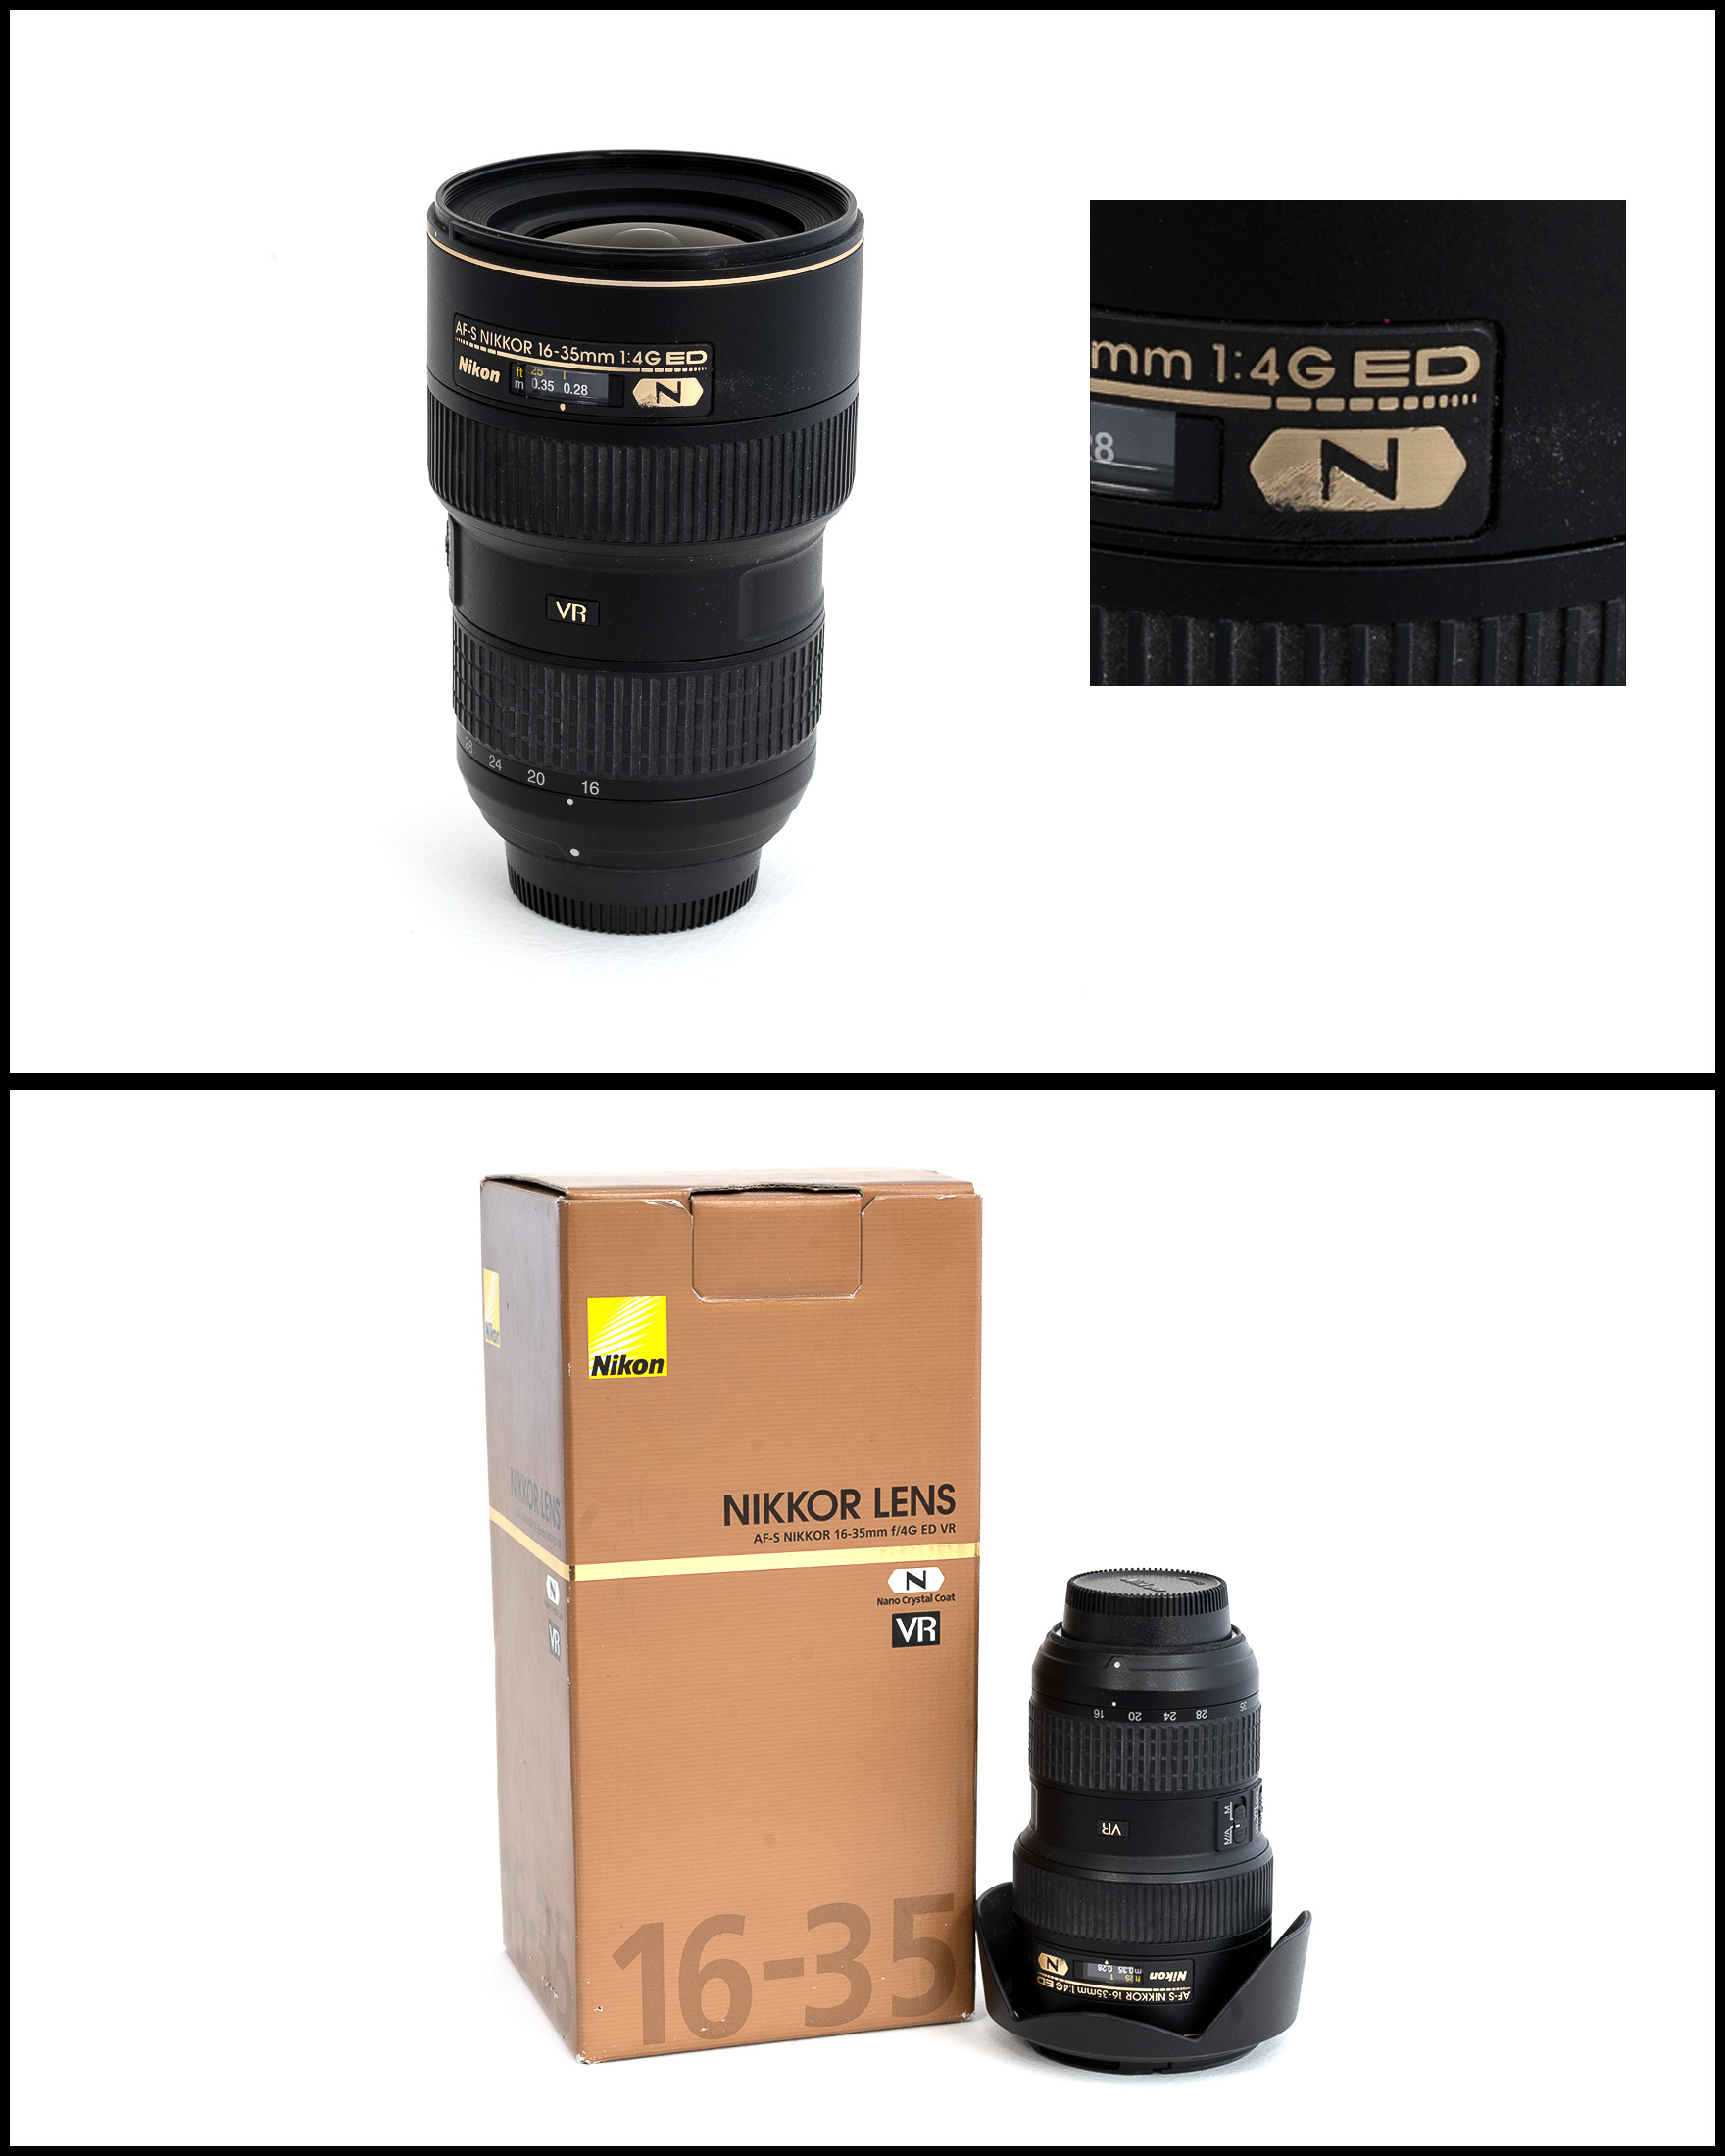 Nikkor/Nikon AF-S 16-35 f/4G ED VR    £650   In good condition slight scratch (pic) with lens hood, front & rear caps, manual, pouch and original box.